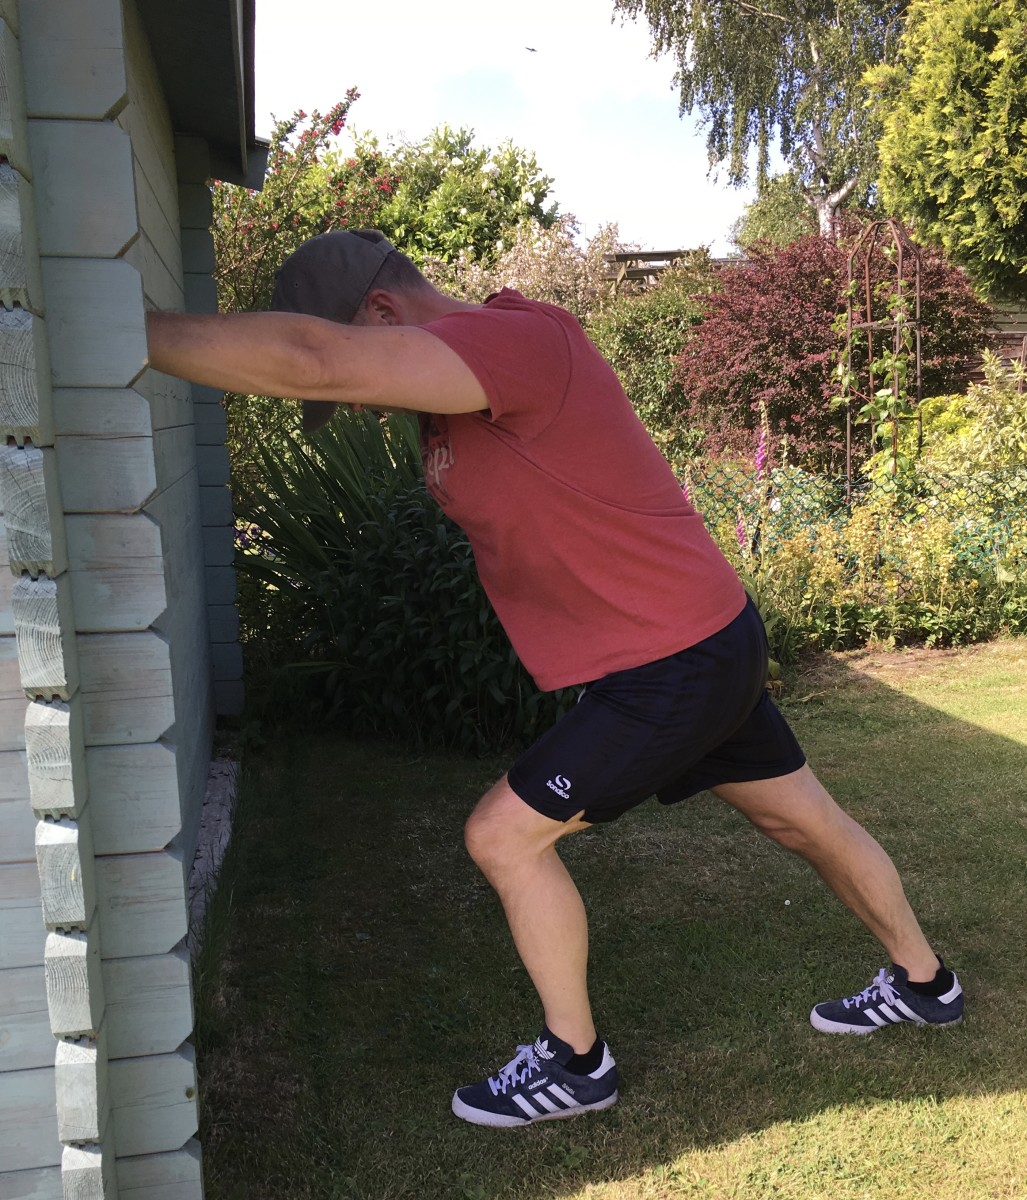 Use a wall to hold a deep stretch to the calf.